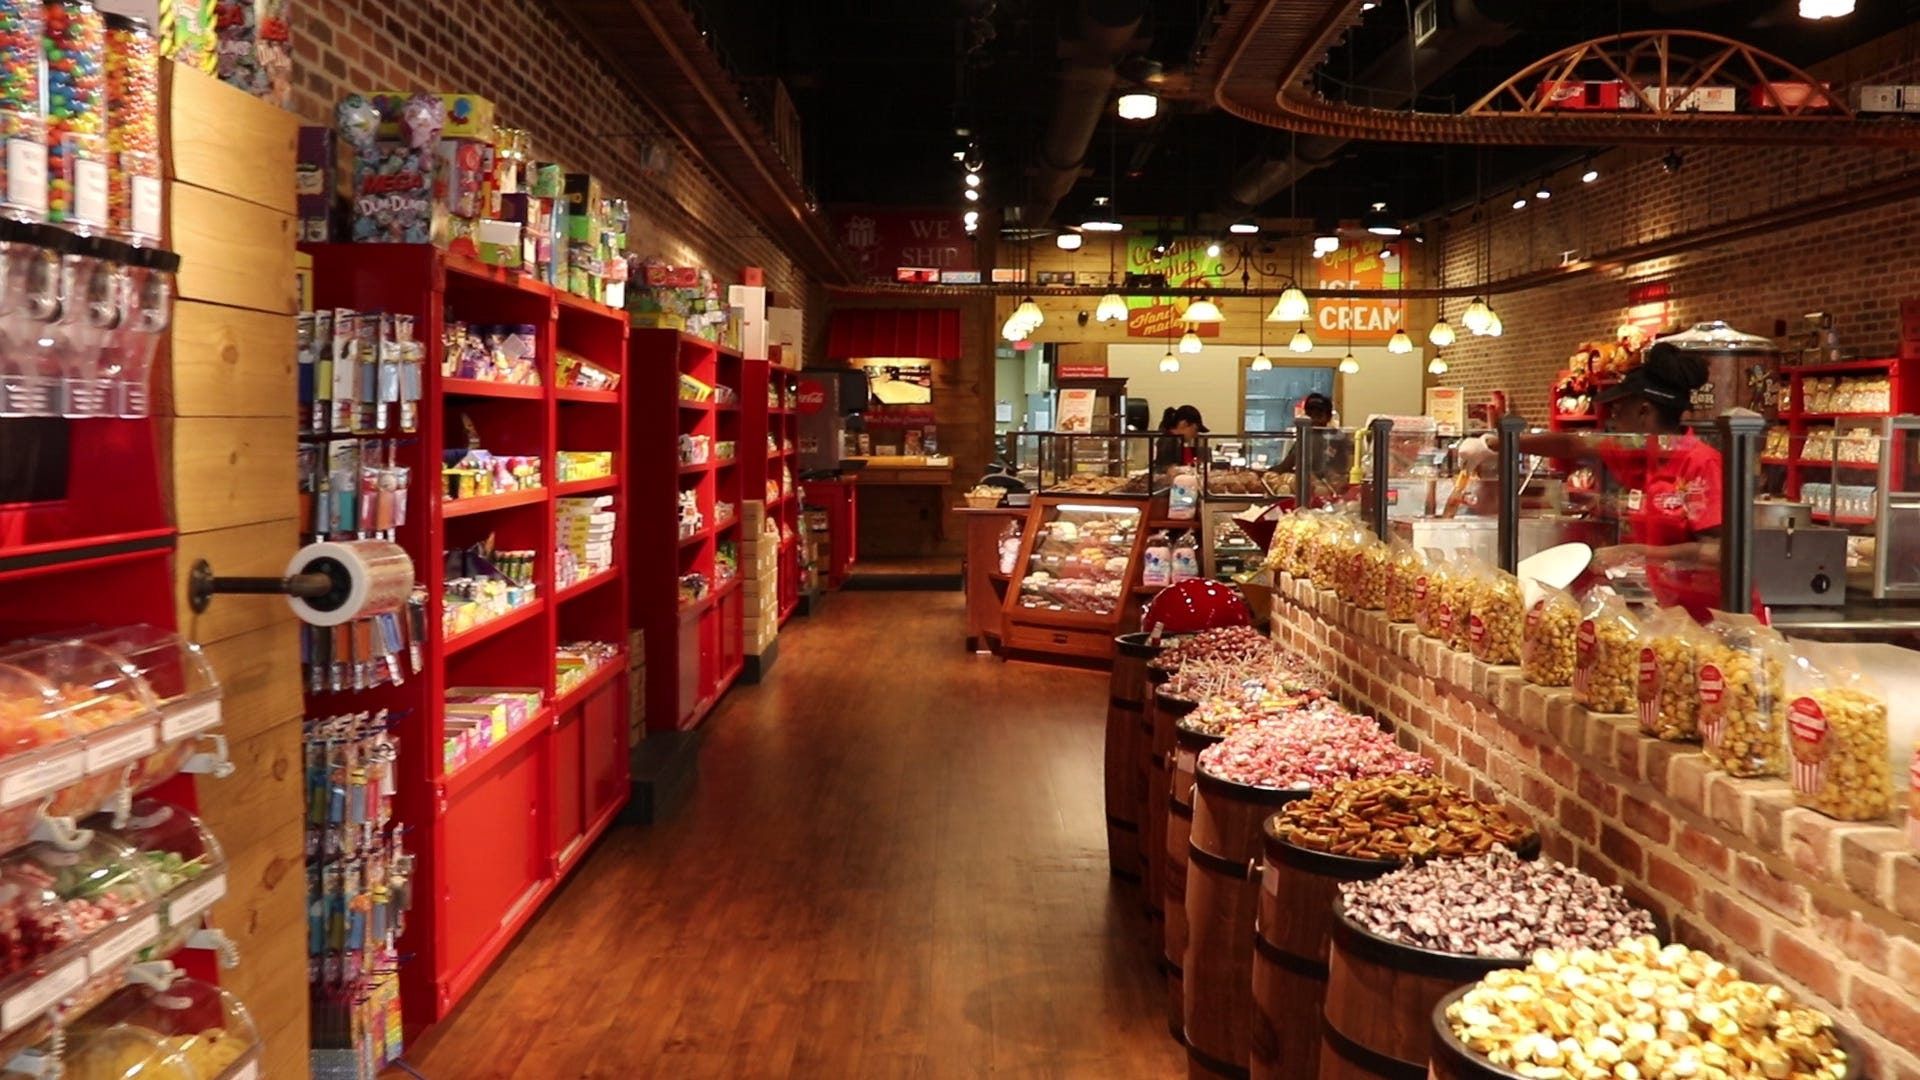 Savannah Based River Street Sweets Will Open A Location In Downtown Heart  Of Greenville